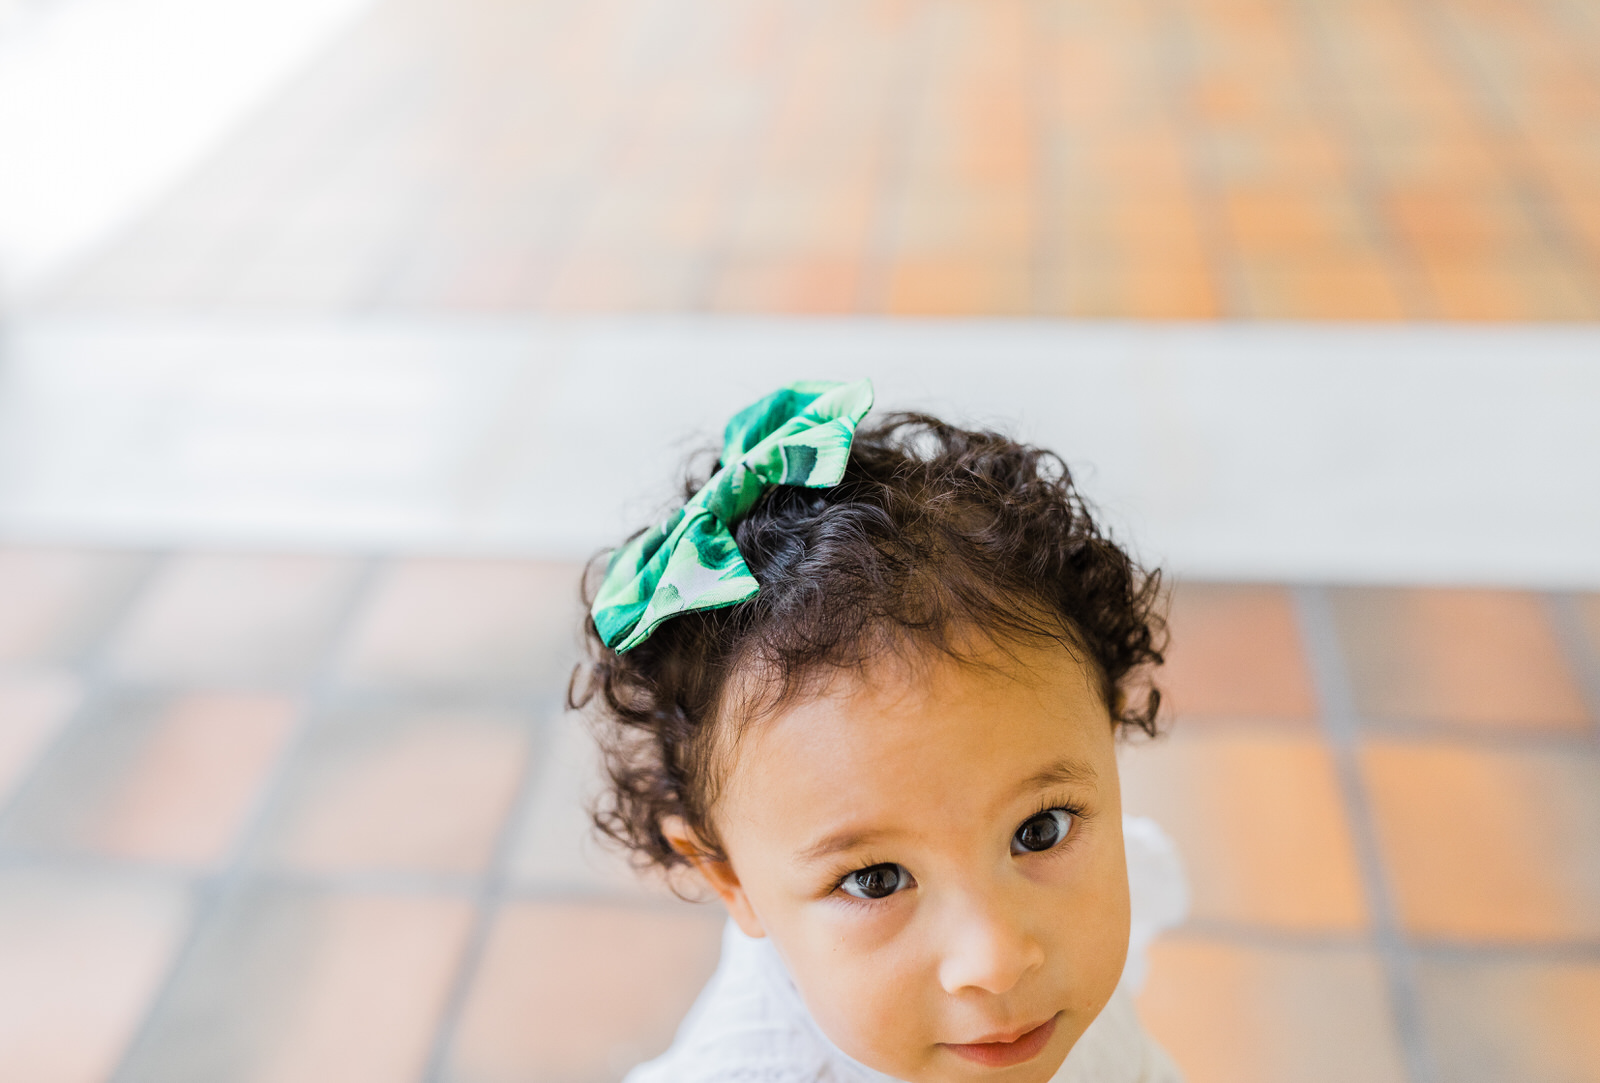 big-island-photographer-small-business-toddler-girls-bows-summer-collection-2468.jpg